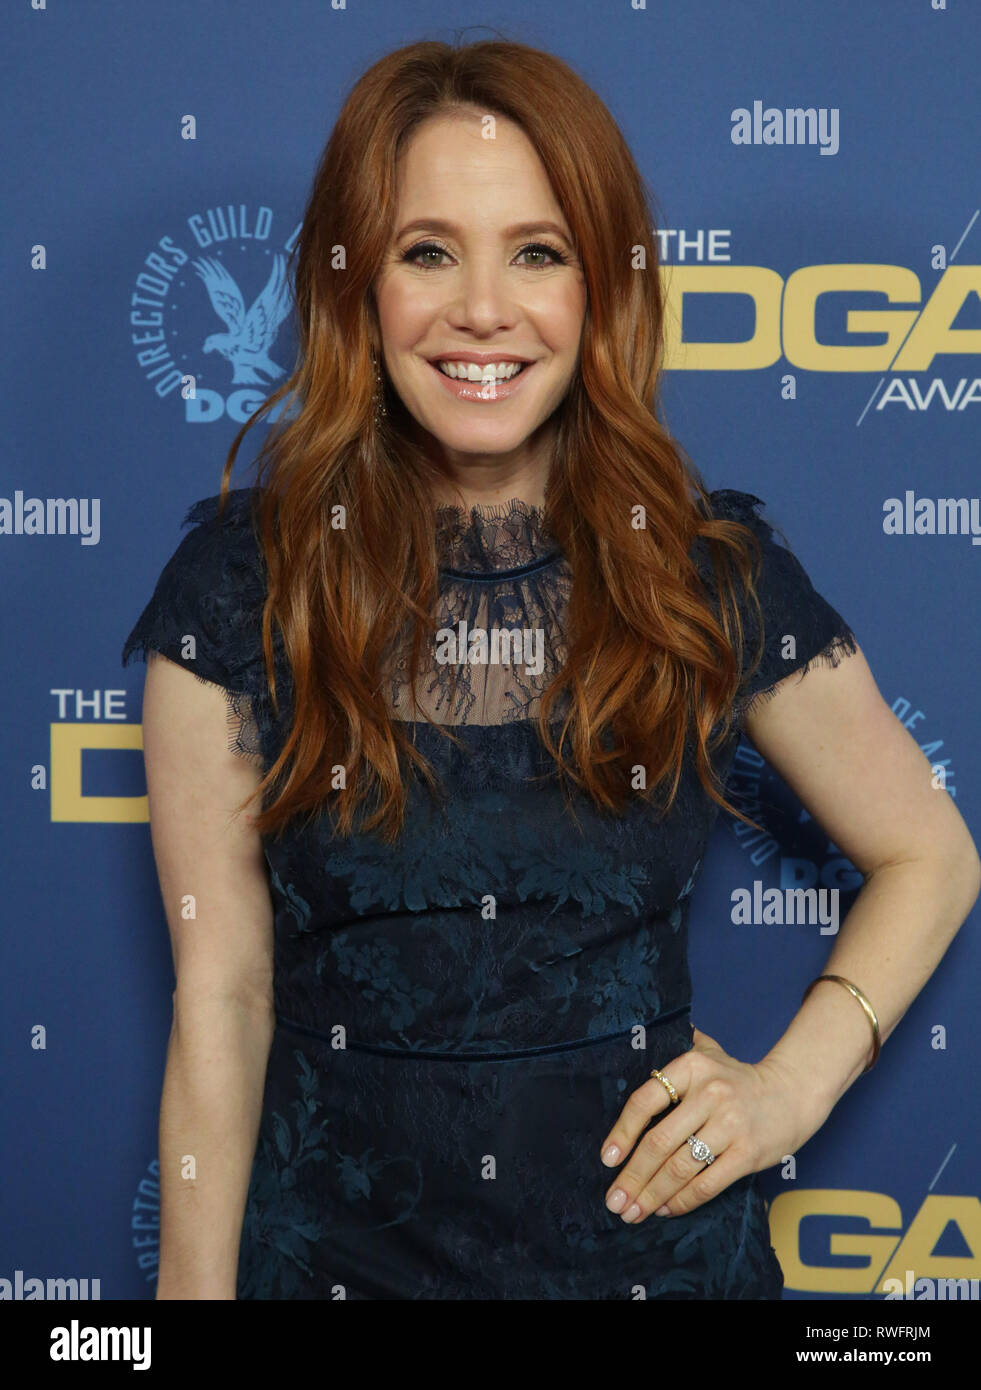 Celebrities attend 71st Annual DGA Awards at Hollywood